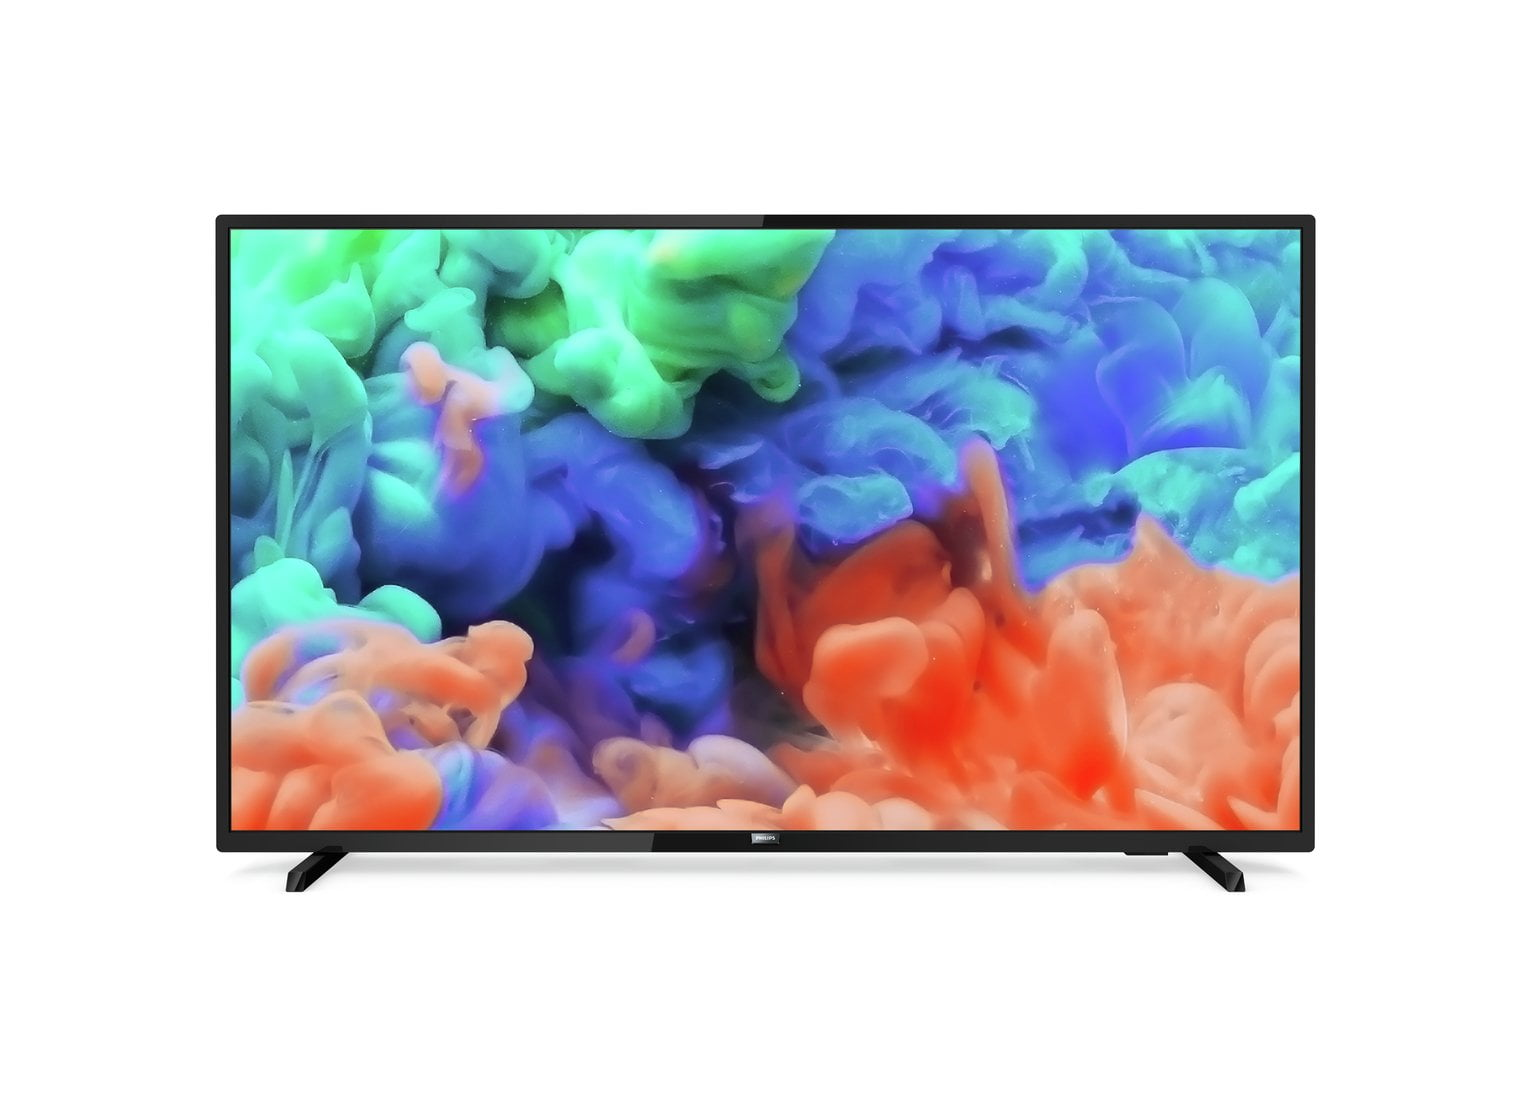 Philips 58 Inch 58PUS6203 Smart 4K LED TV with HDR